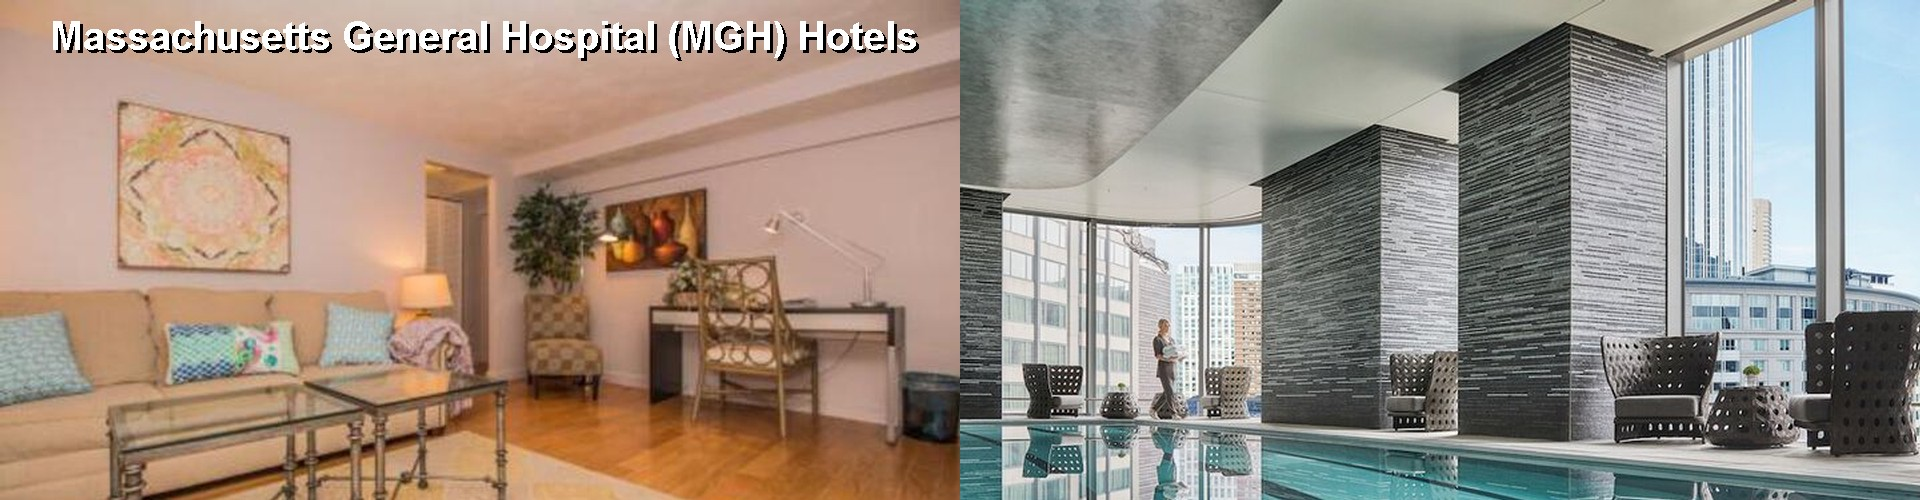 3 Best Hotels near Massachusetts General Hospital (MGH)